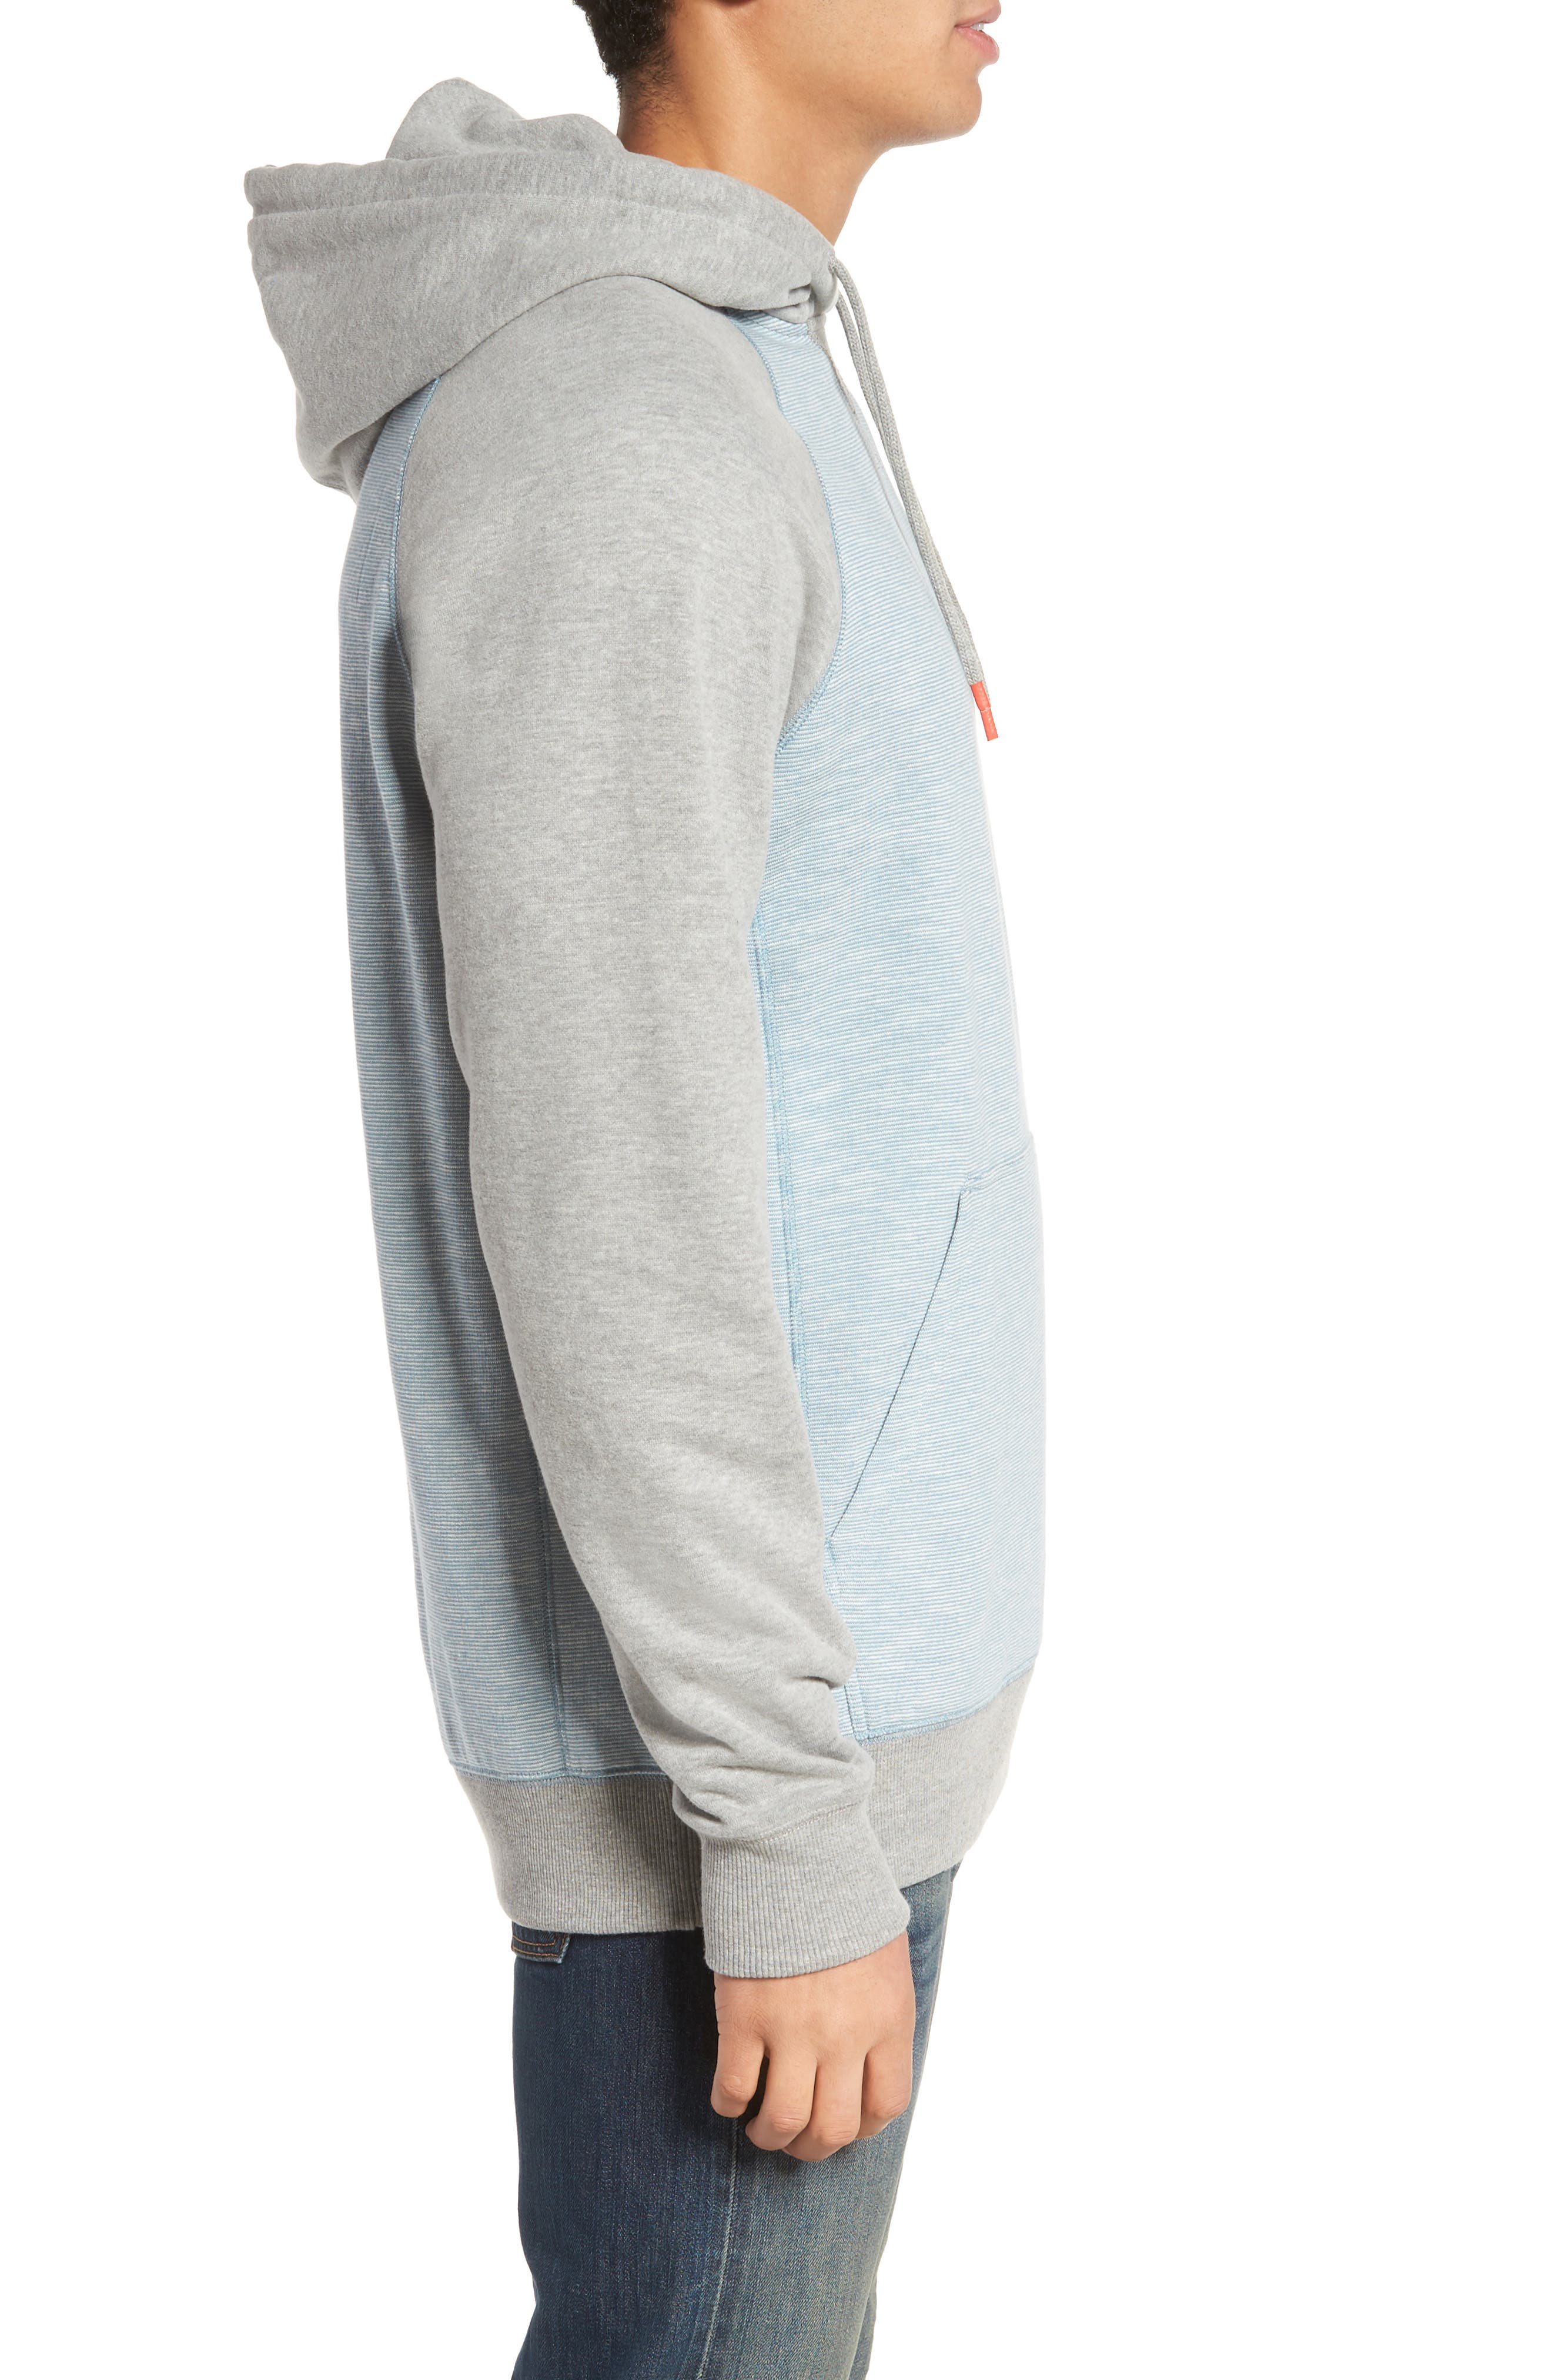 Balance Hoodie,                             Alternate thumbnail 6, color,